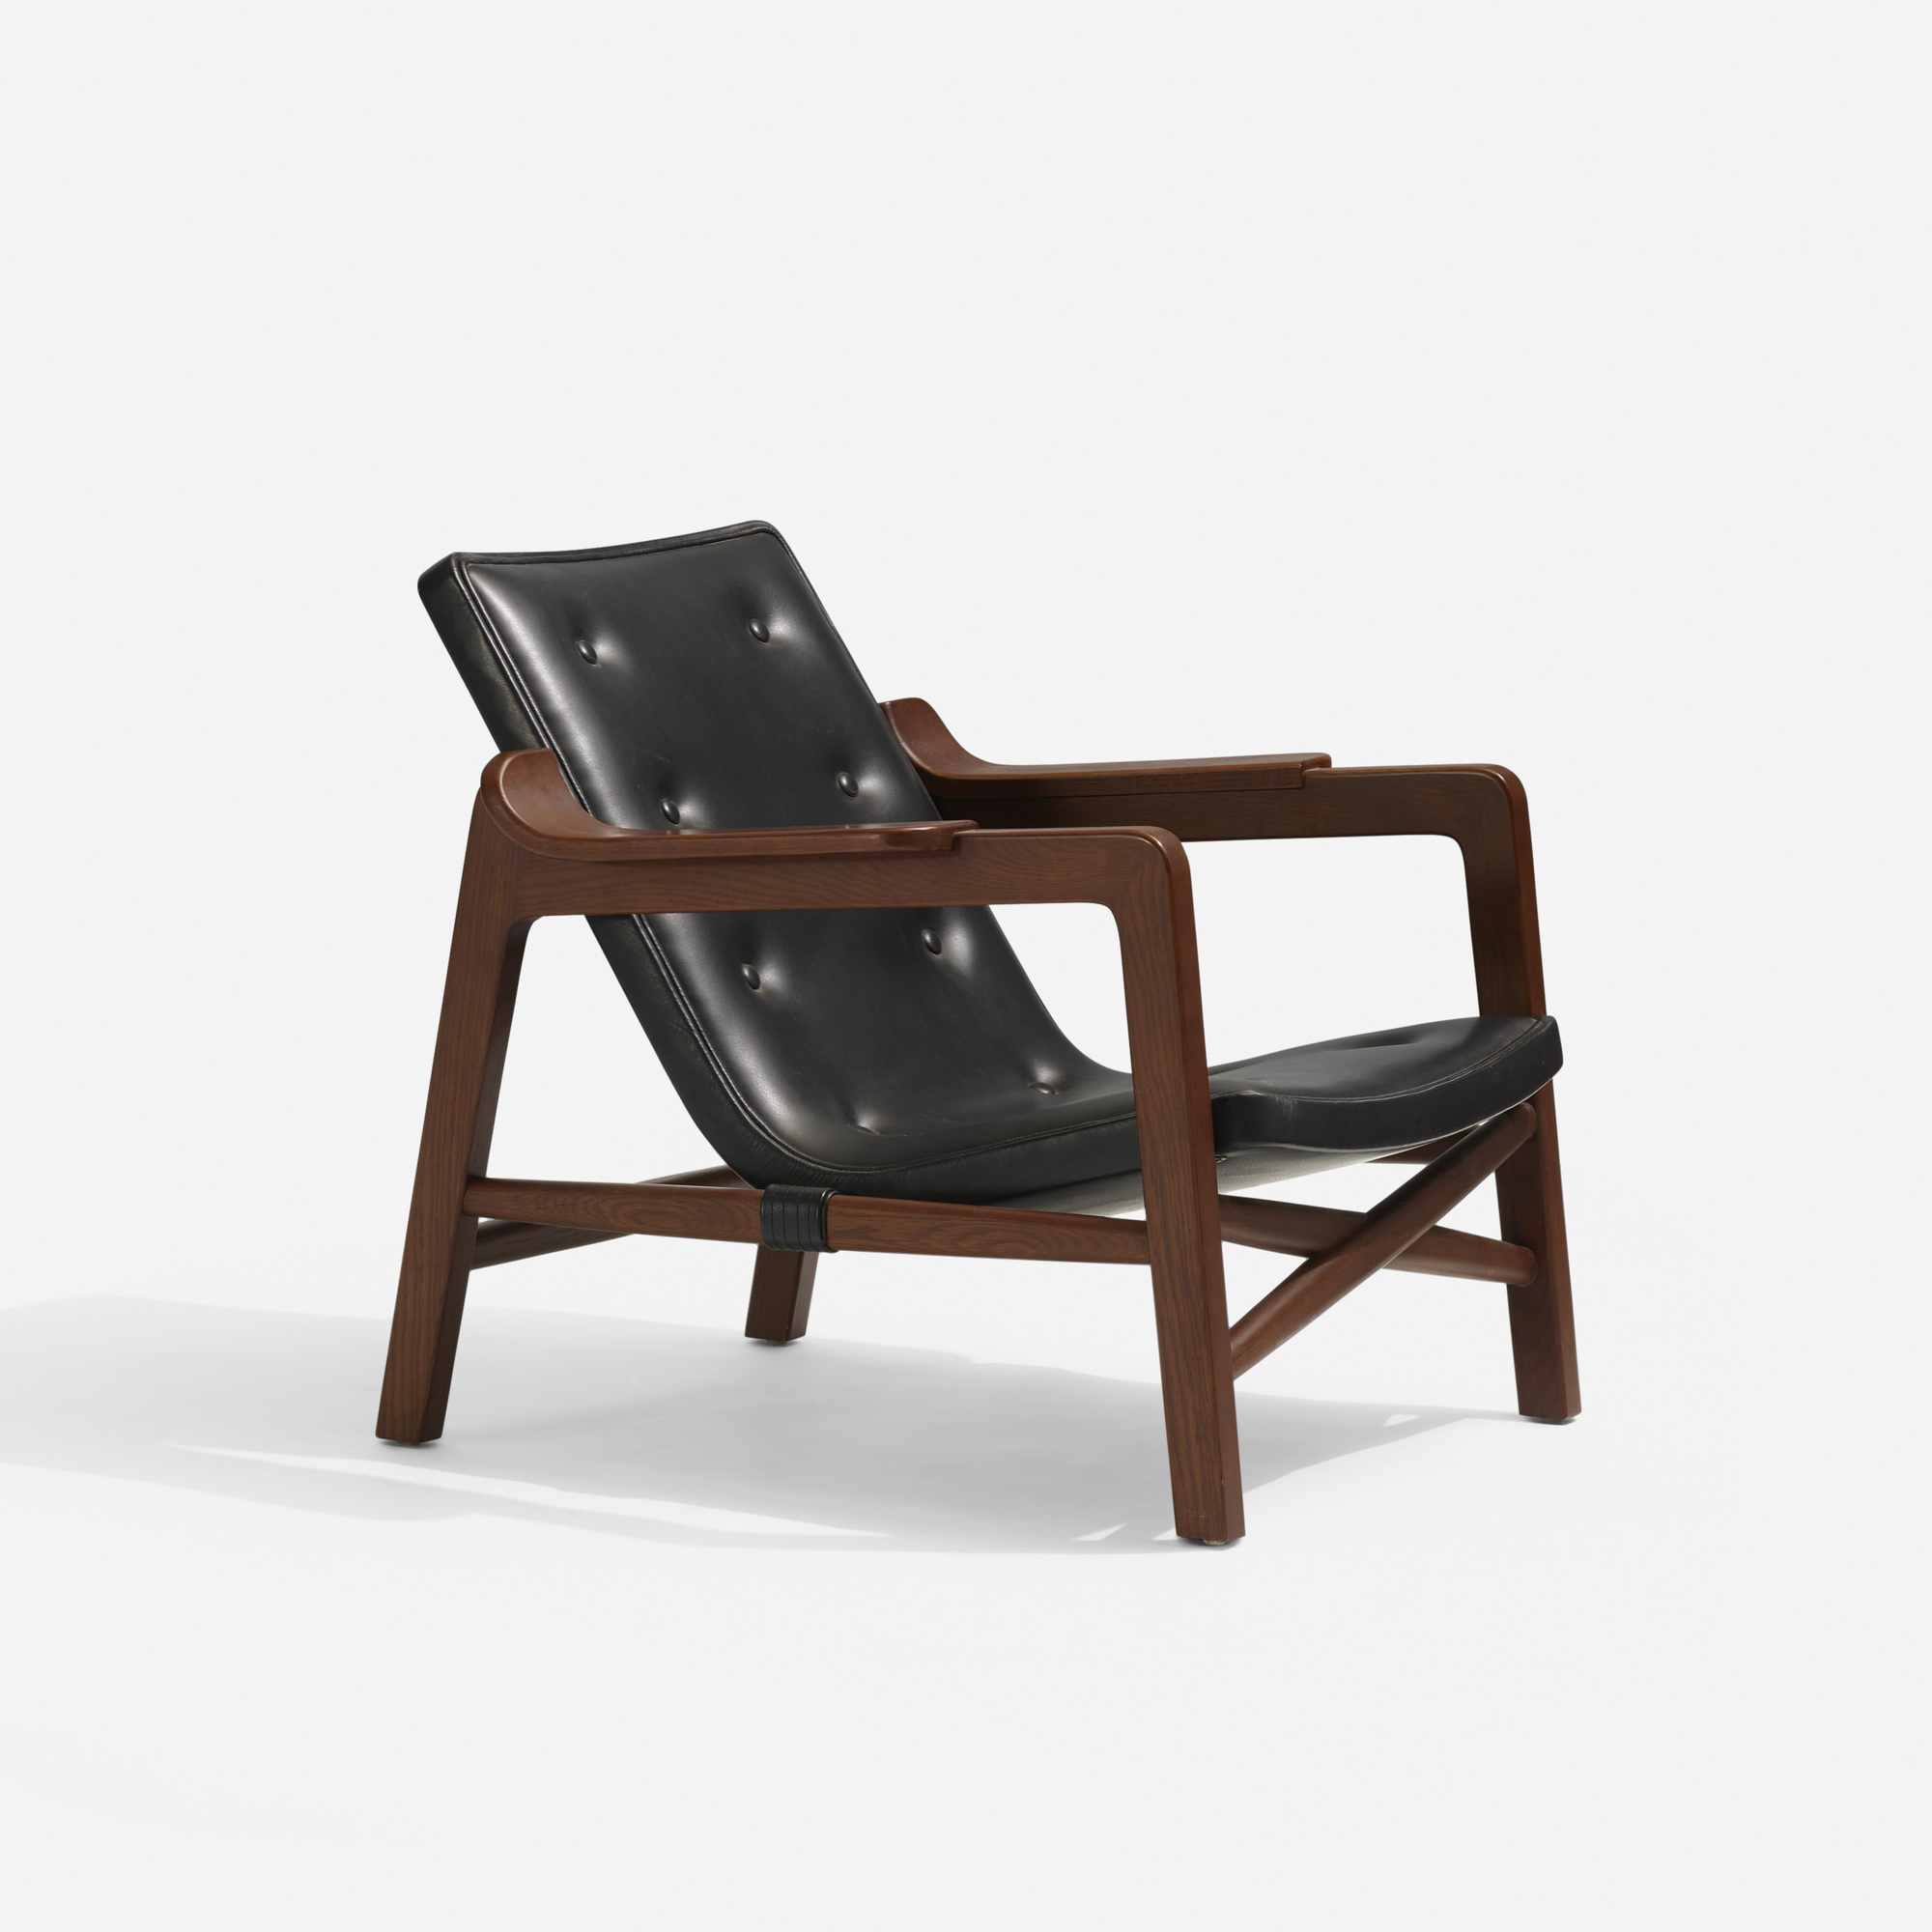 127: Edvard and Tove Kindt-Larsen / lounge chair (1 of 4)